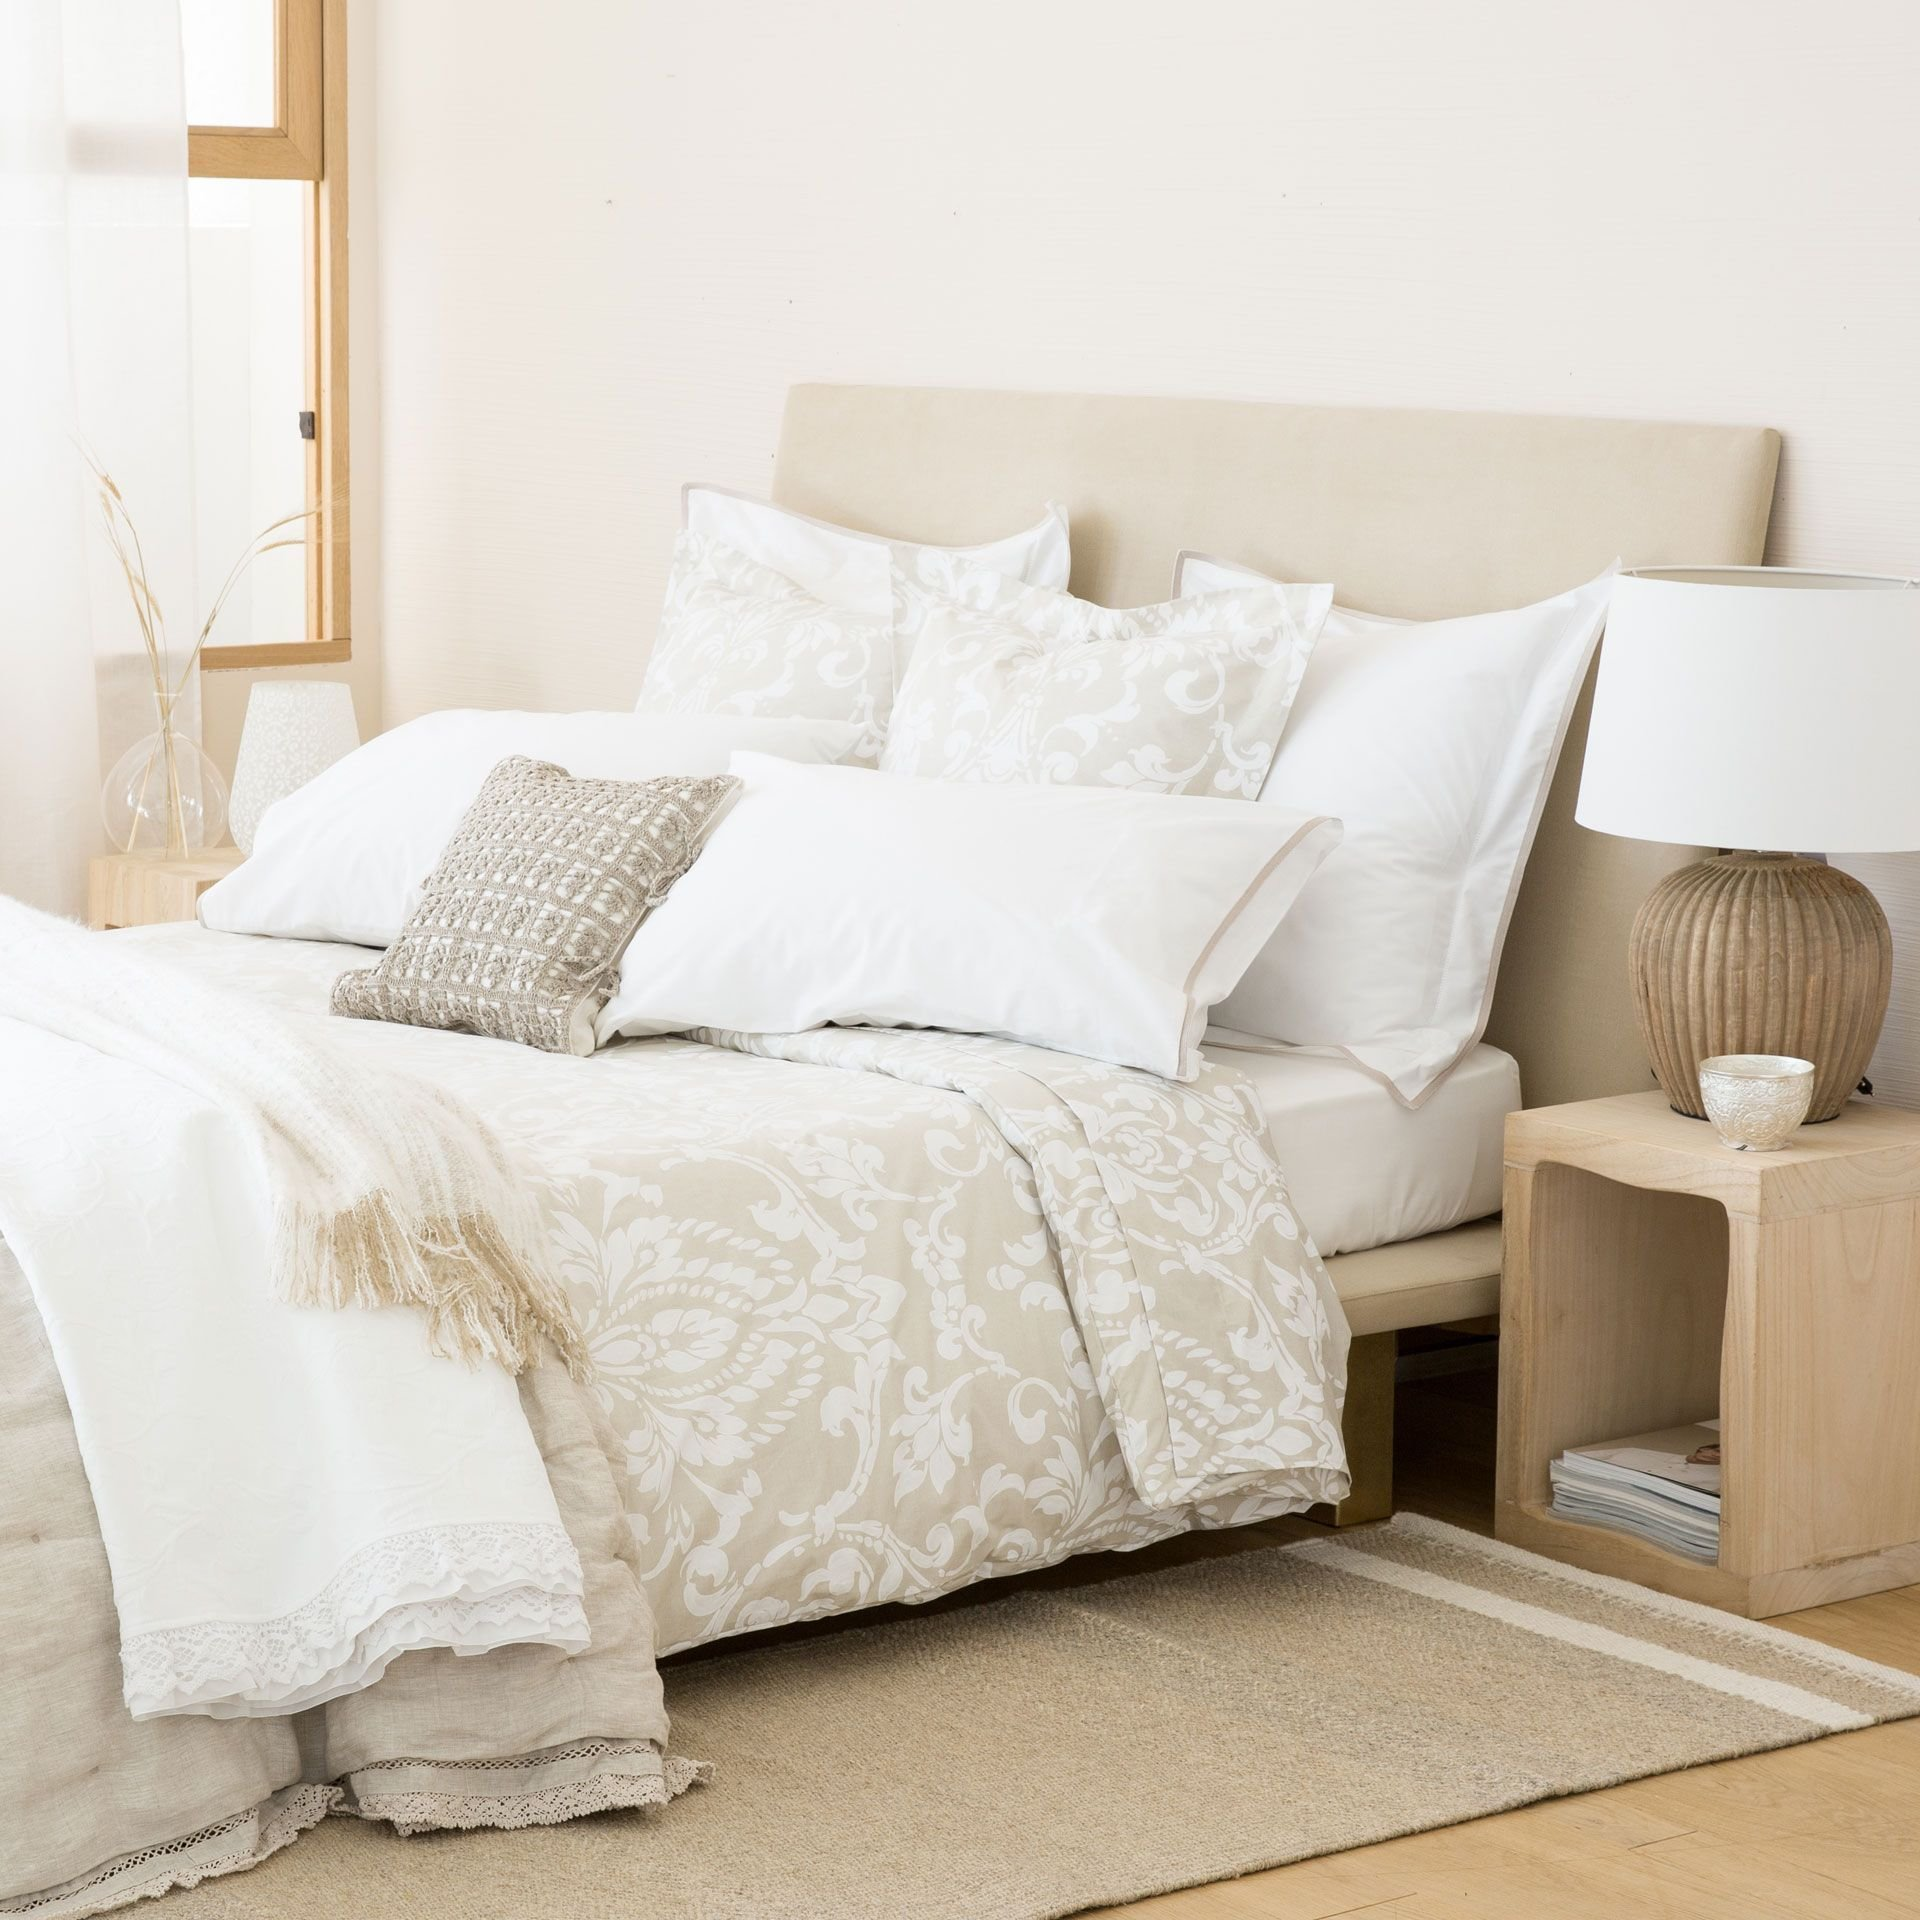 Best 11 Decor Ideas Zara Home Bedroom Ideas Collections Bedroom Ideas With Pictures